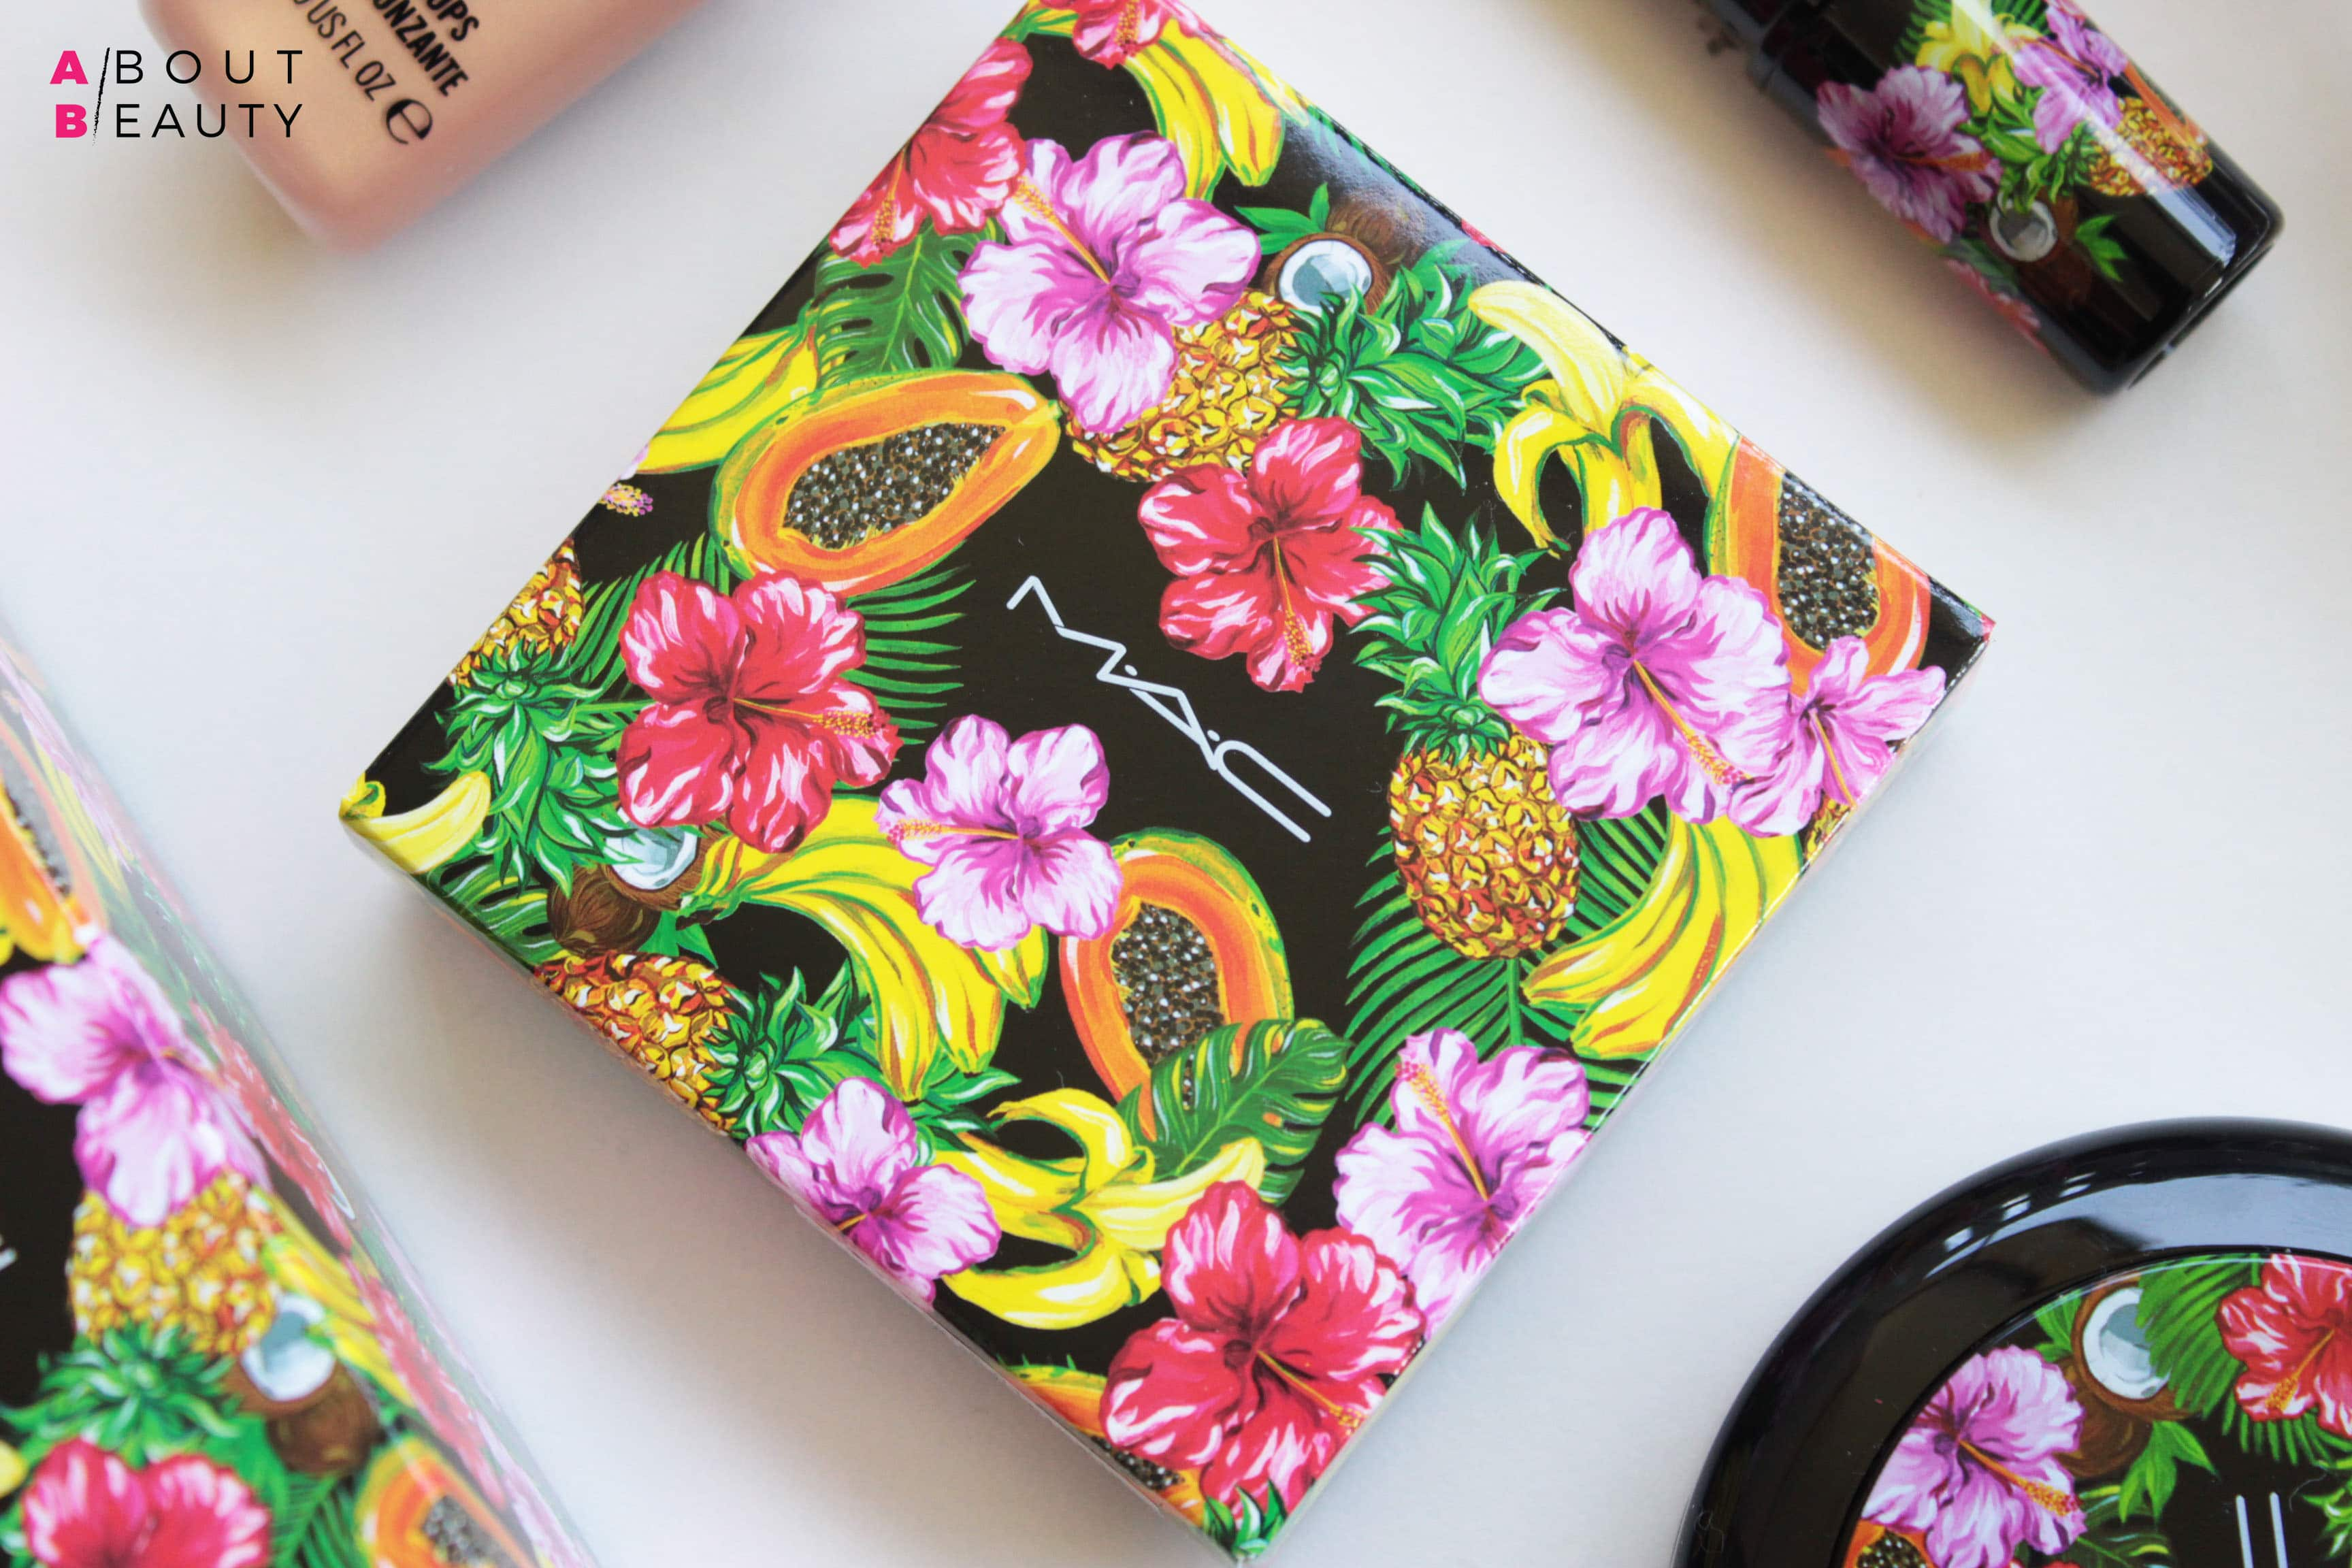 MAC Fruity Juicy Studio Sculpt Defining Bronzing Powder - Review, Swatch, opinioni e comparazioni della terra da contouring Studio Sculpt Defining Bronzing Powder Delicates in limited edition